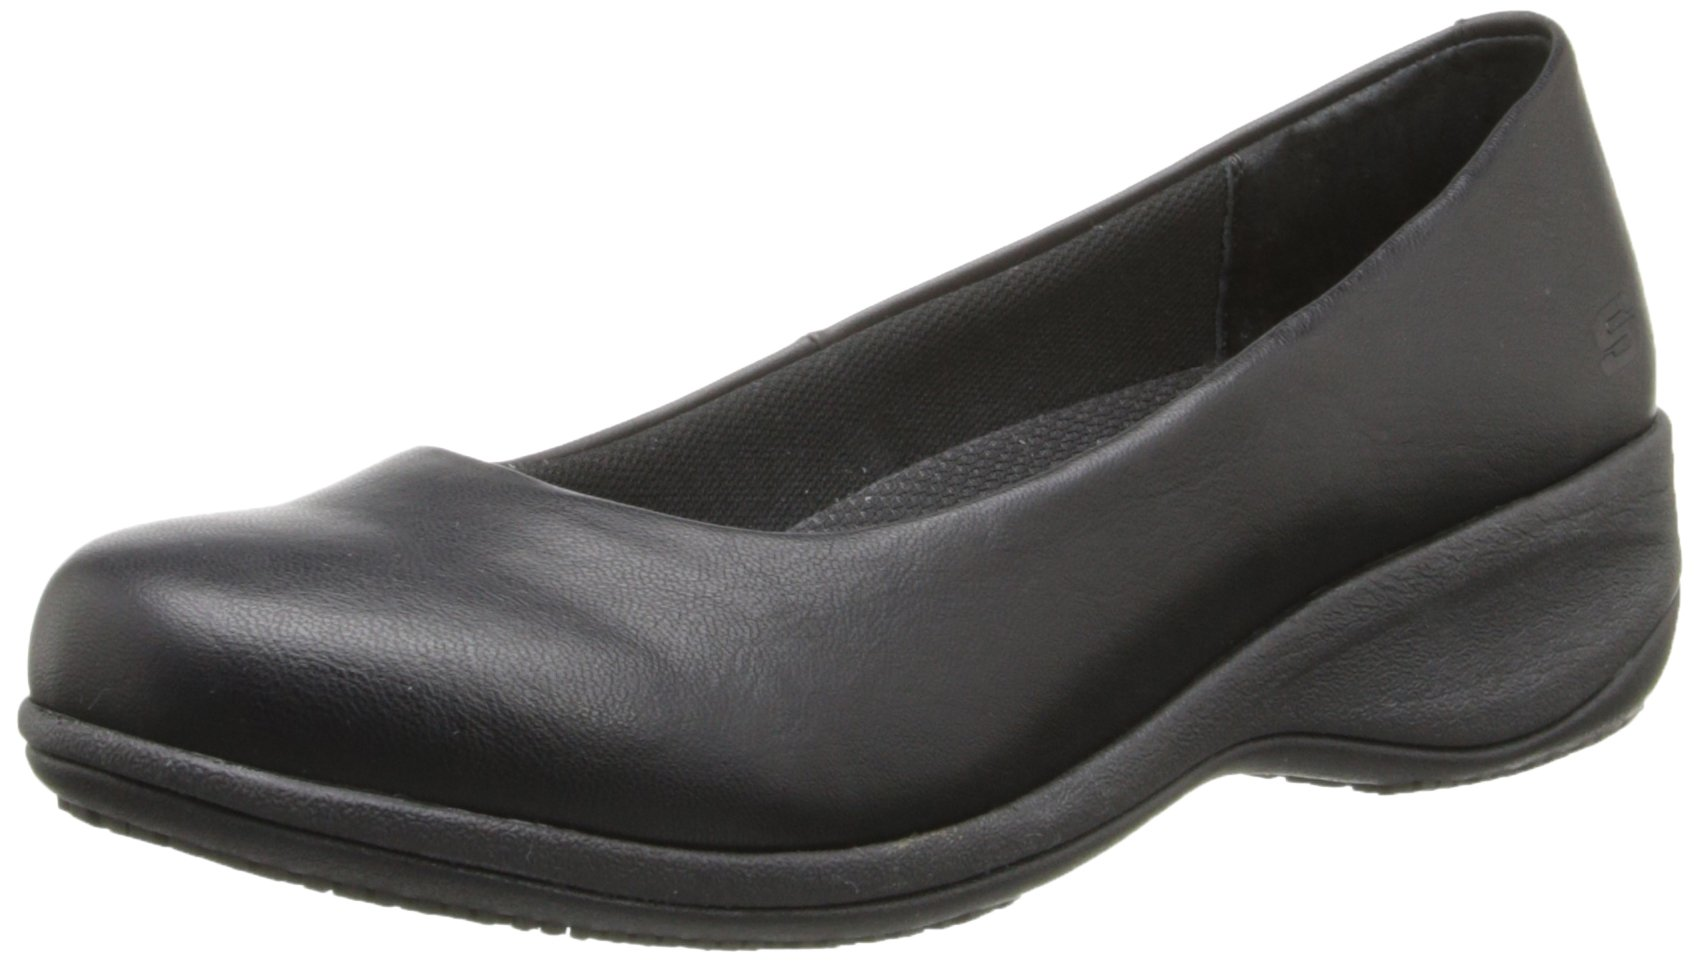 Skechers for Work Women's Mina Slip-On,Black,9 M US